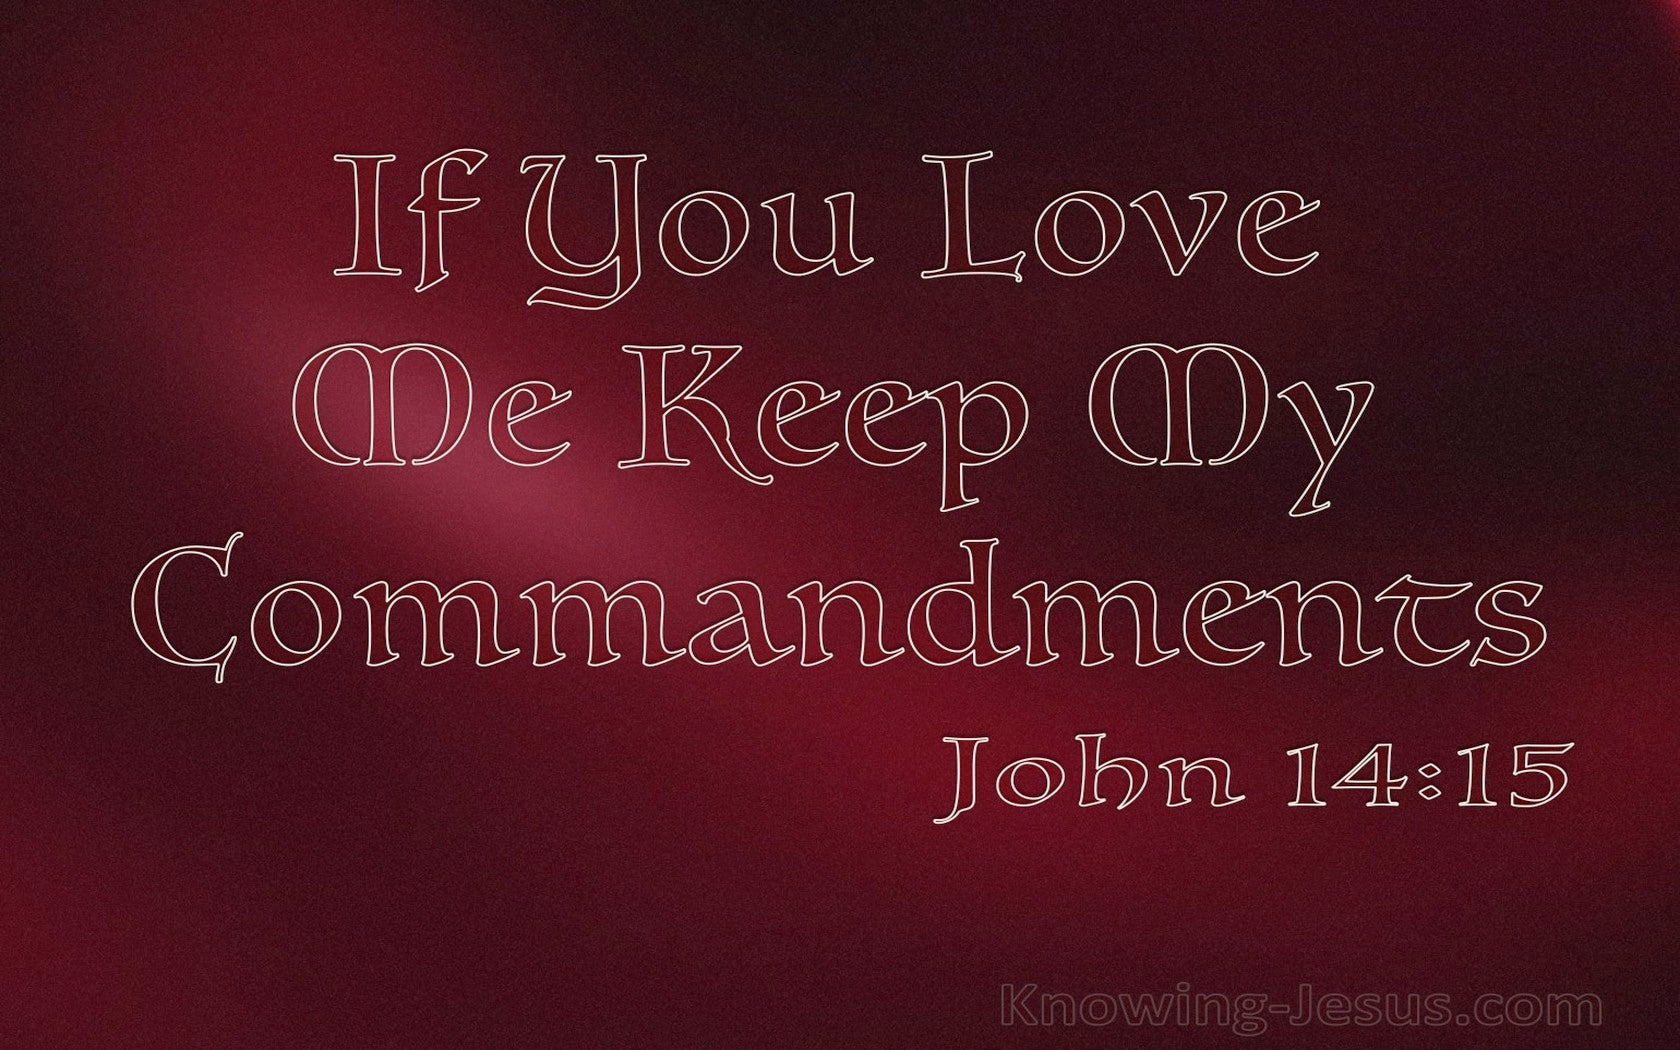 John 14:15 In You Love Me Keep My Commandments (red)